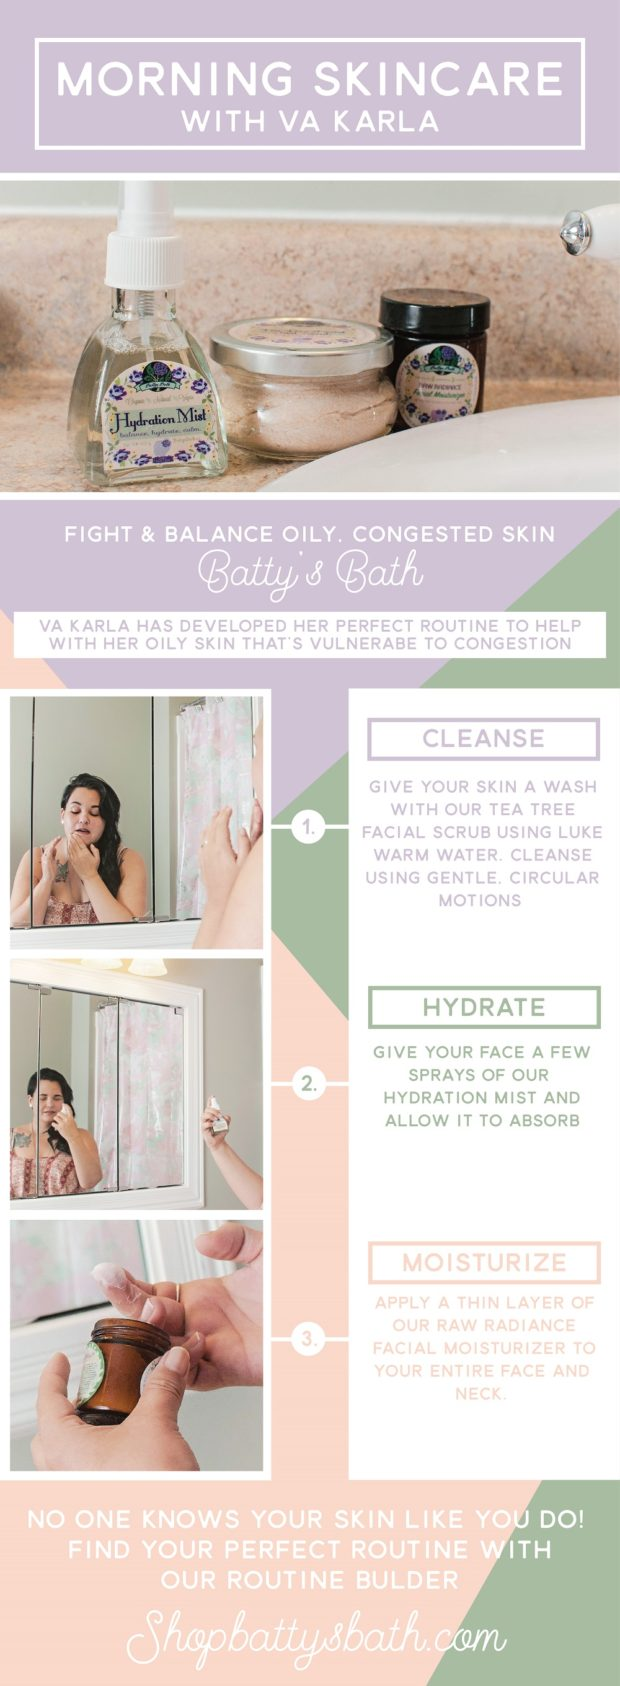 Morning skin care routine for VA Karla who's oily skin is vulnerable to congestion.